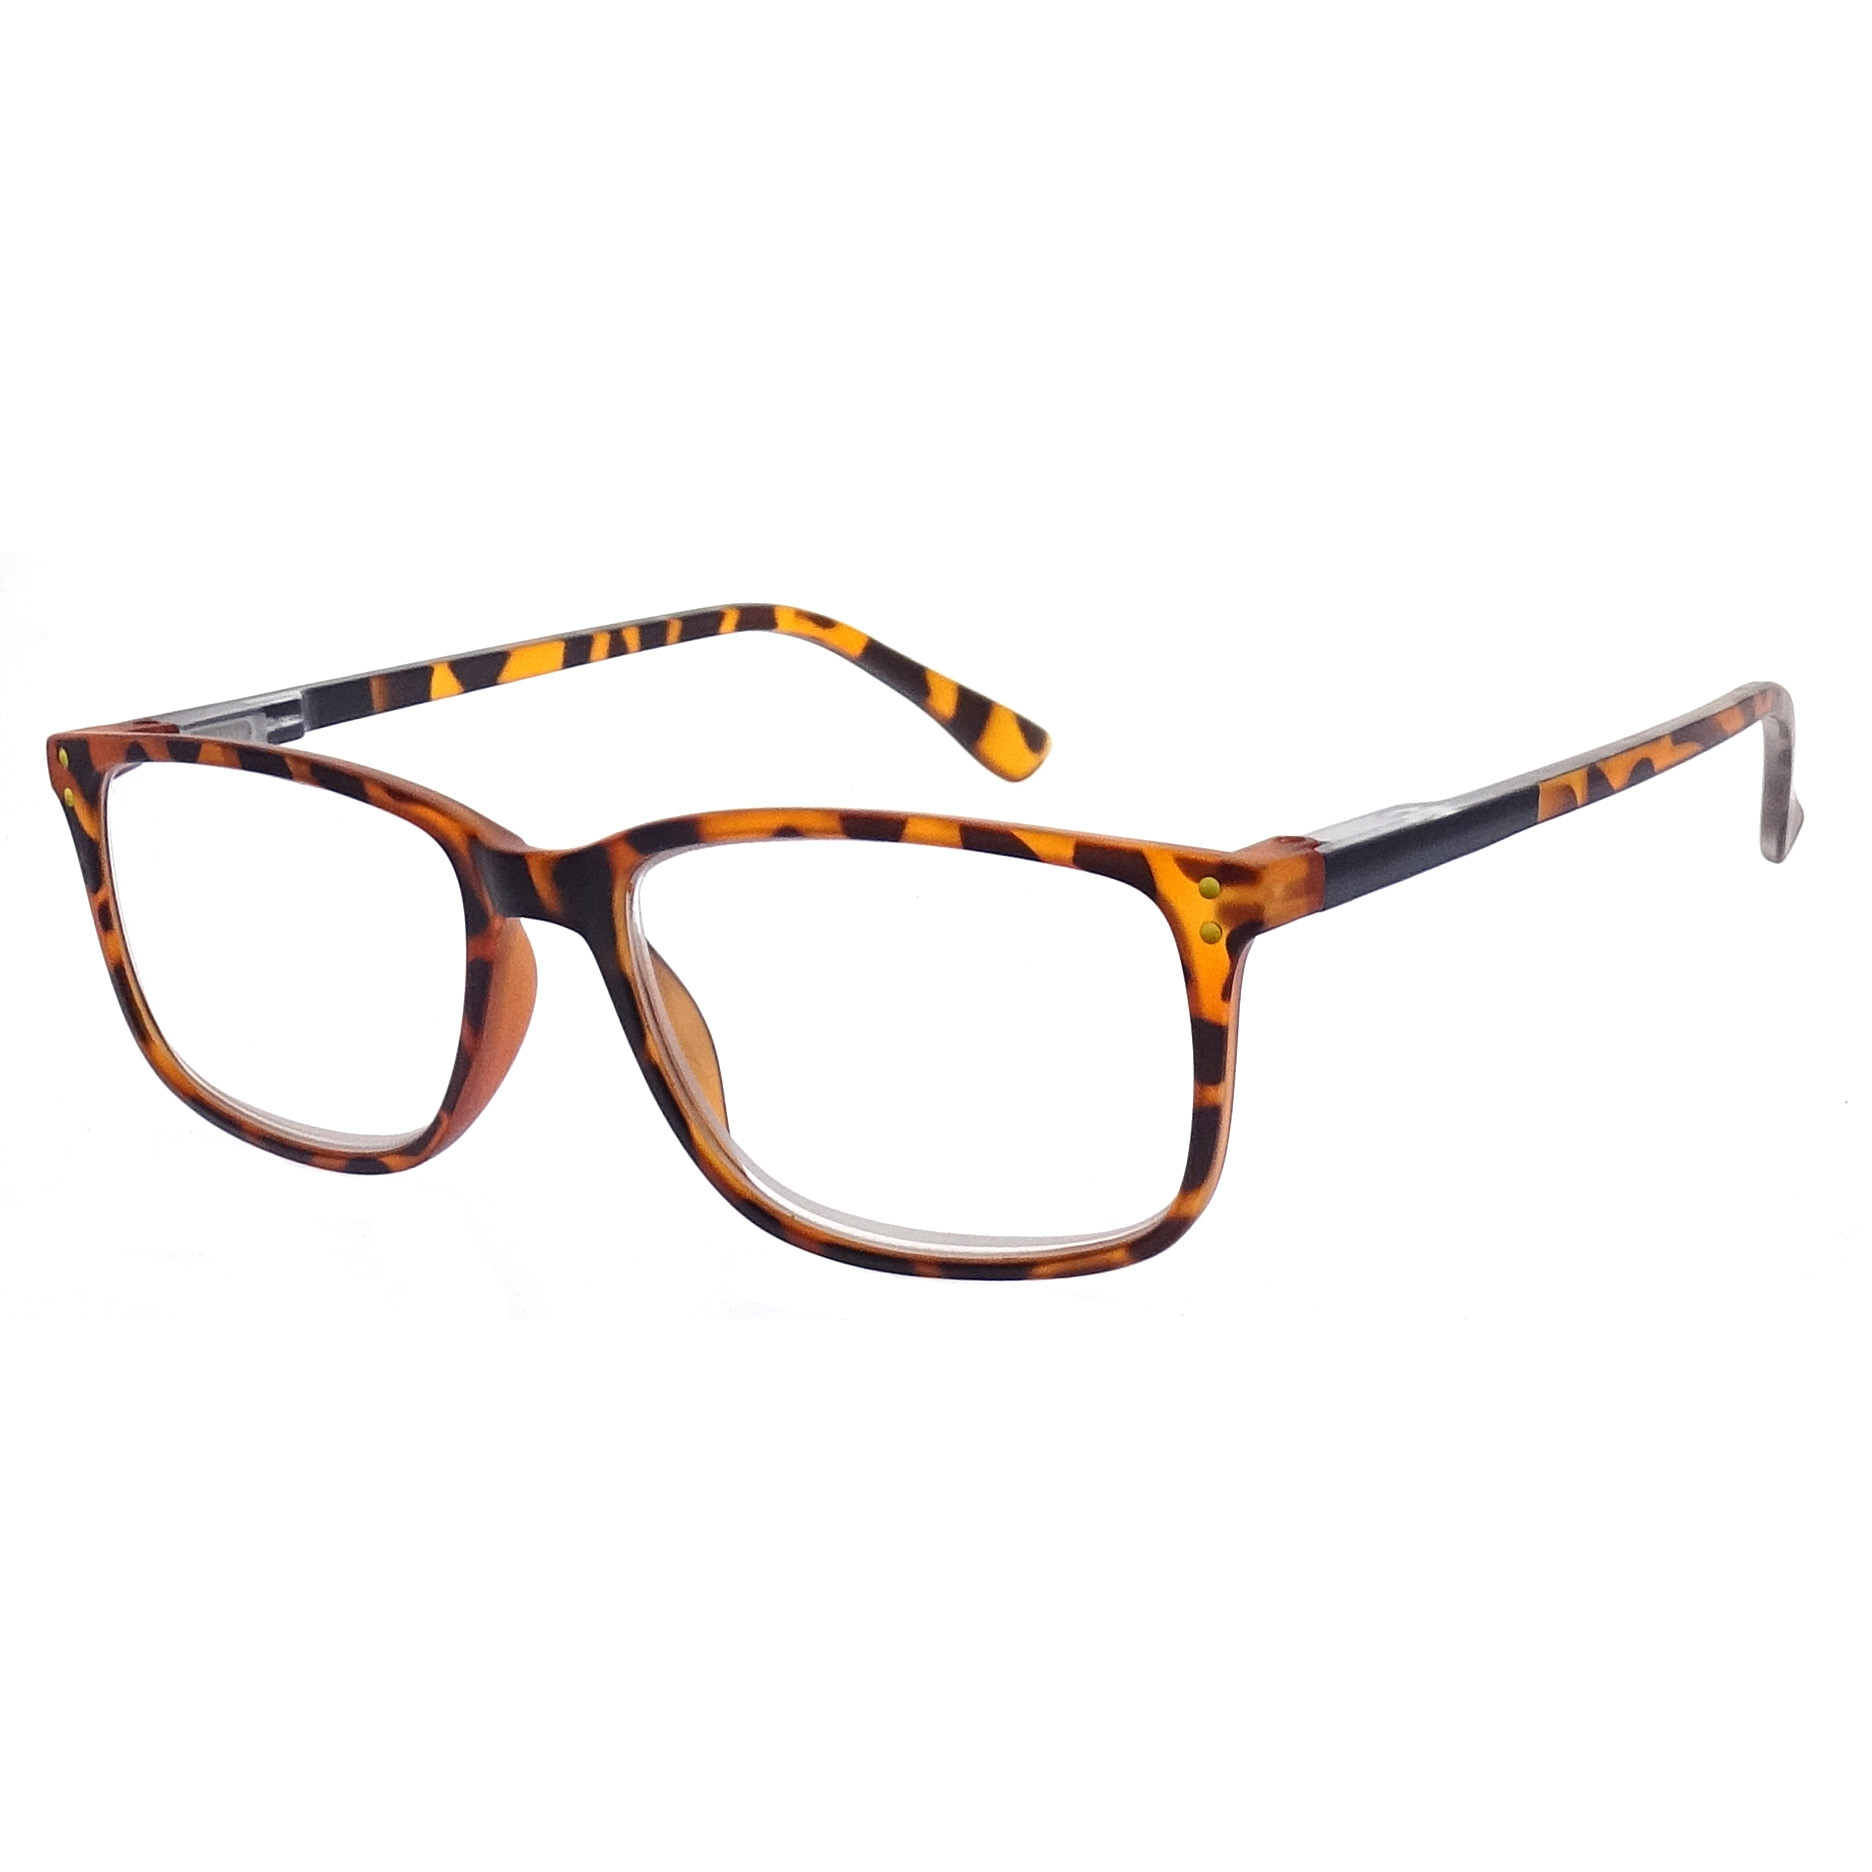 Rectangular frame different styles of colorful plastic reading glasses for women LR-P6273